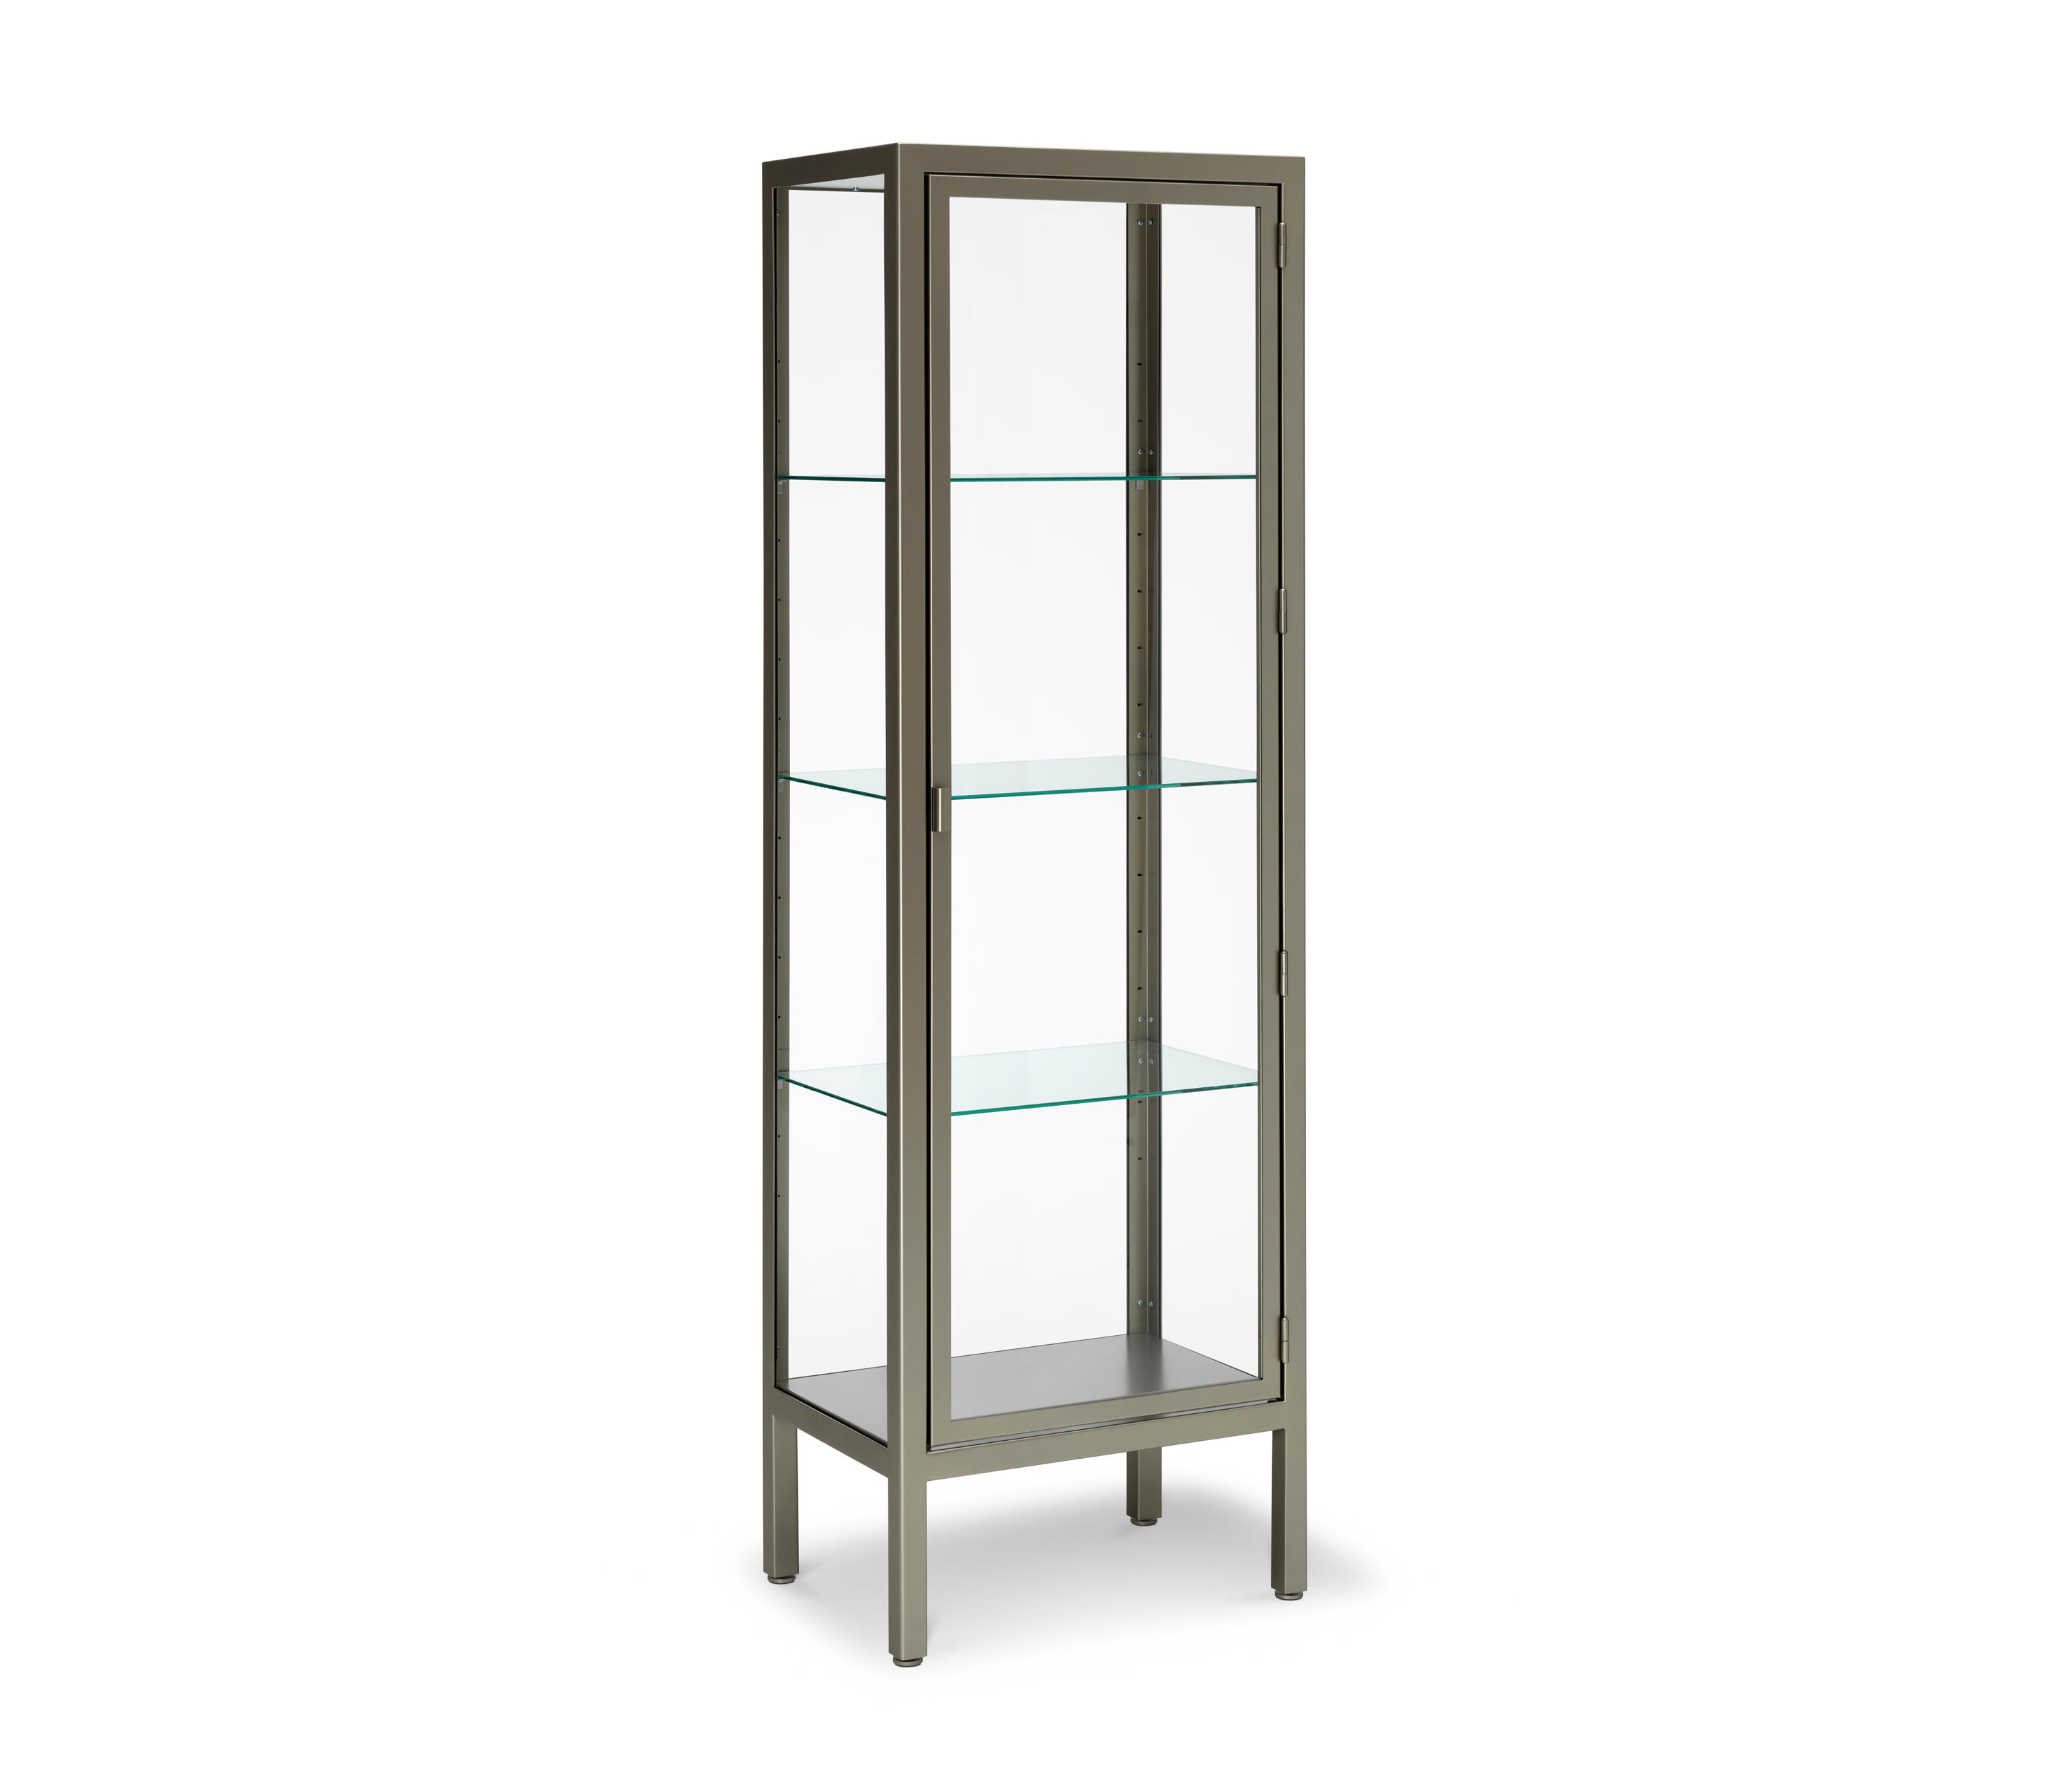 Gb 175 Glass Cabinet Designer Furniture Architonic